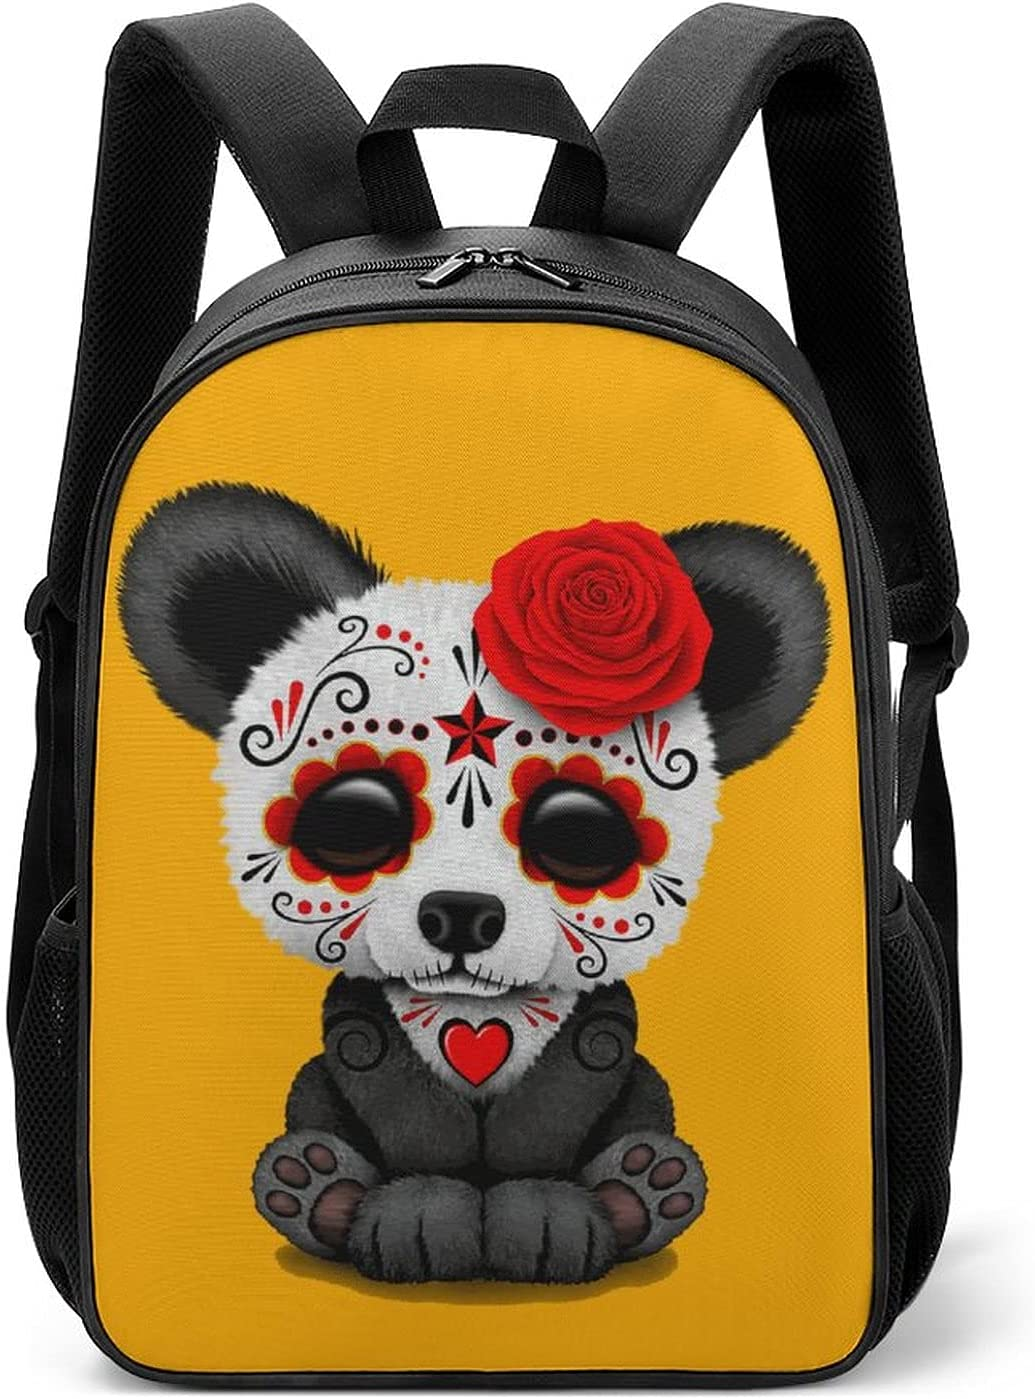 YsHuang Cute Sugar Skull Baby Animal Unisex Oxford Cl Children's All stores New life are sold